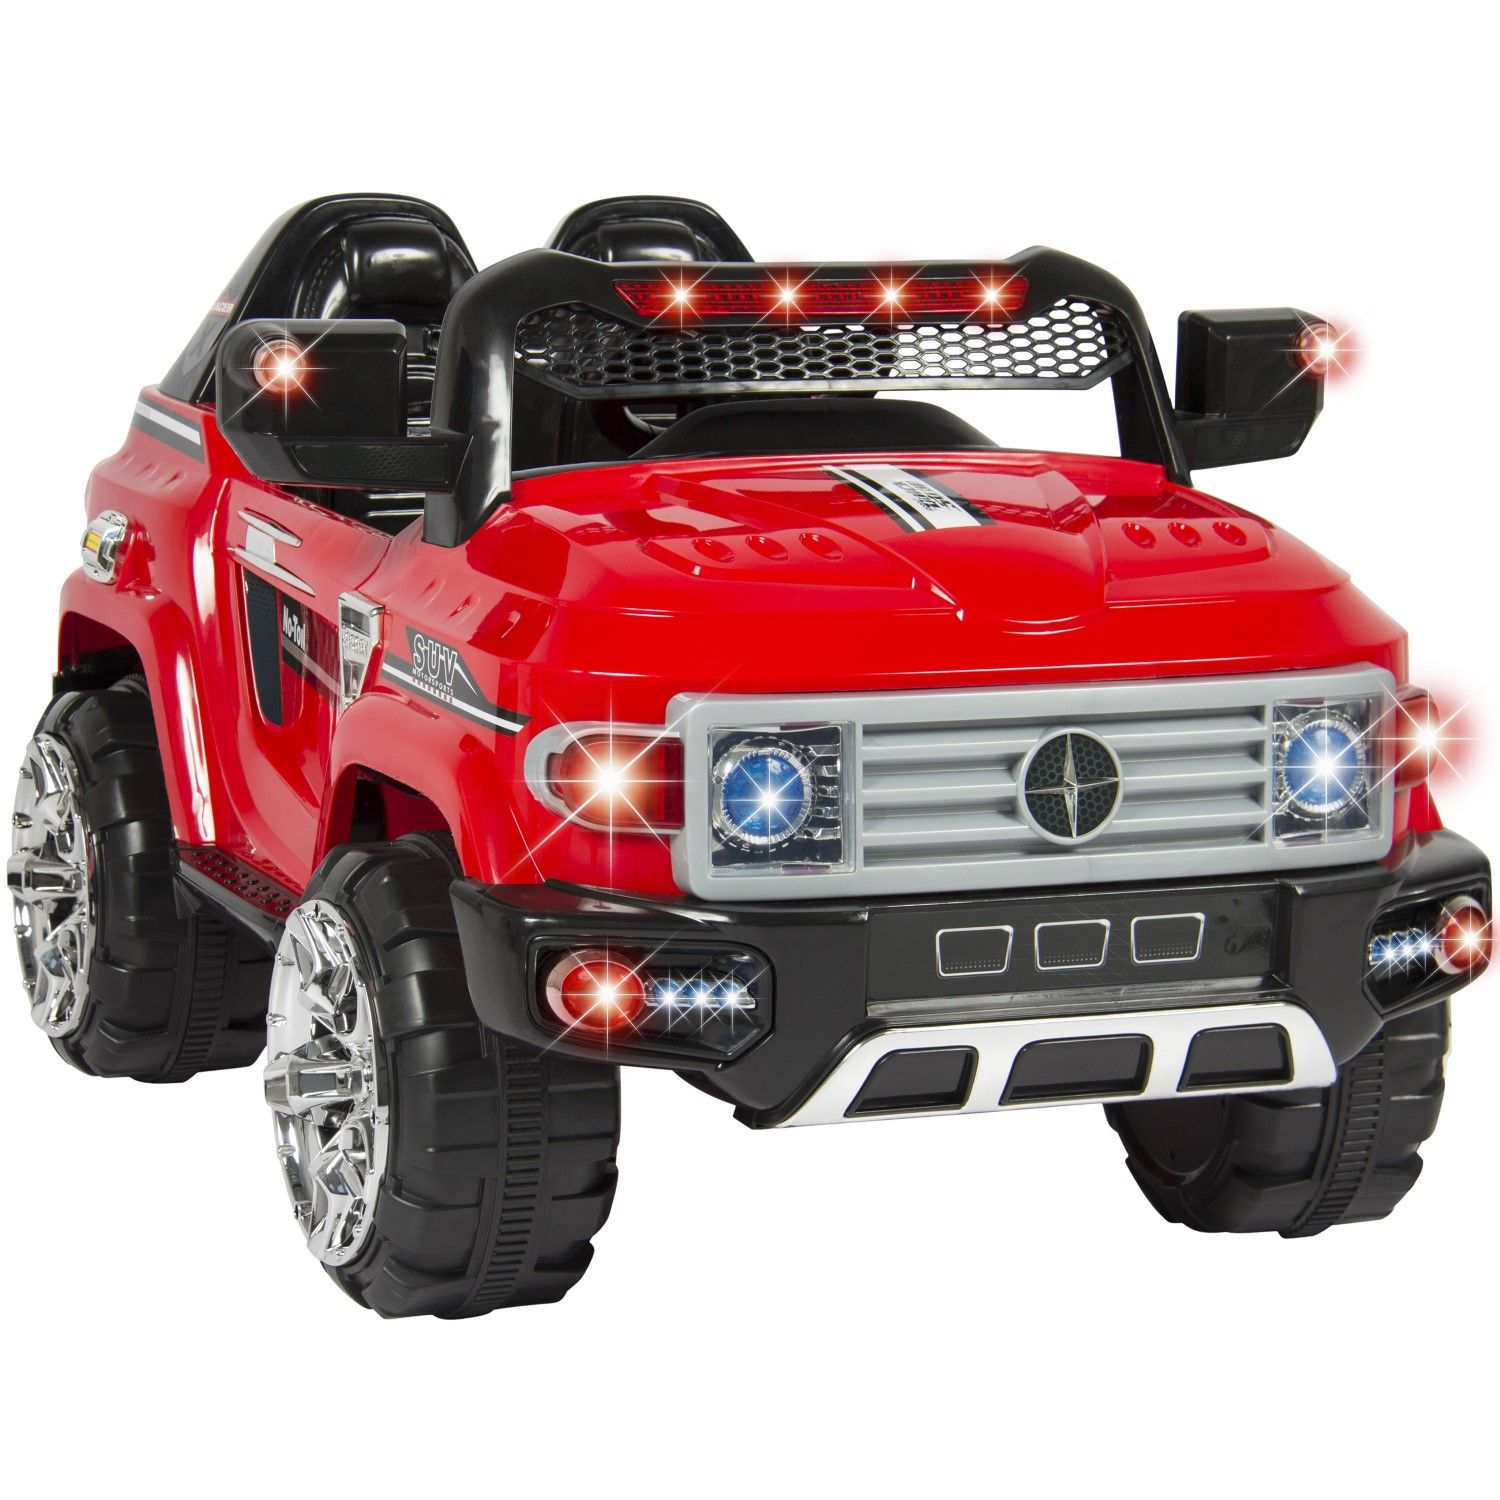 Kids Ride On Truck With Remote Control Led Lights And Music Red Remote Control Trucks Kids Ride On Ride On Toys